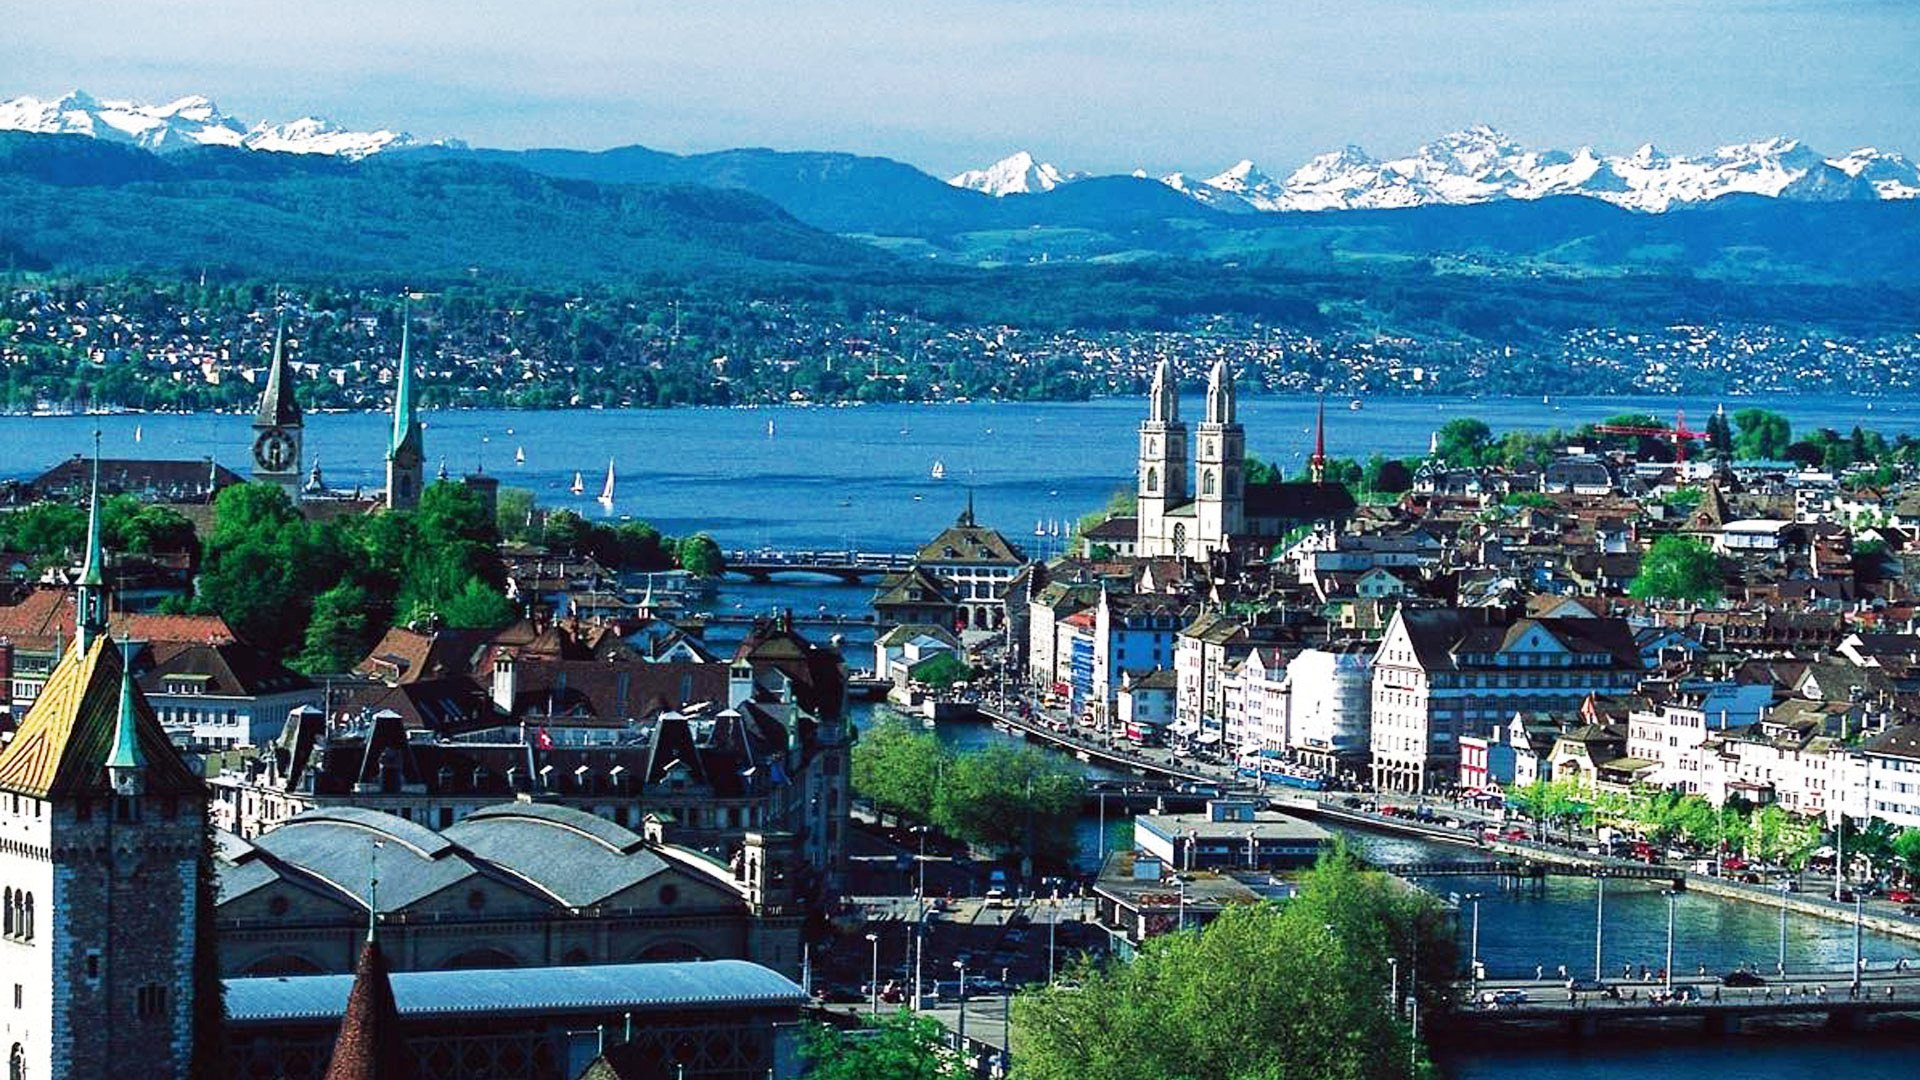 Top Tourist Attractions in Zurich